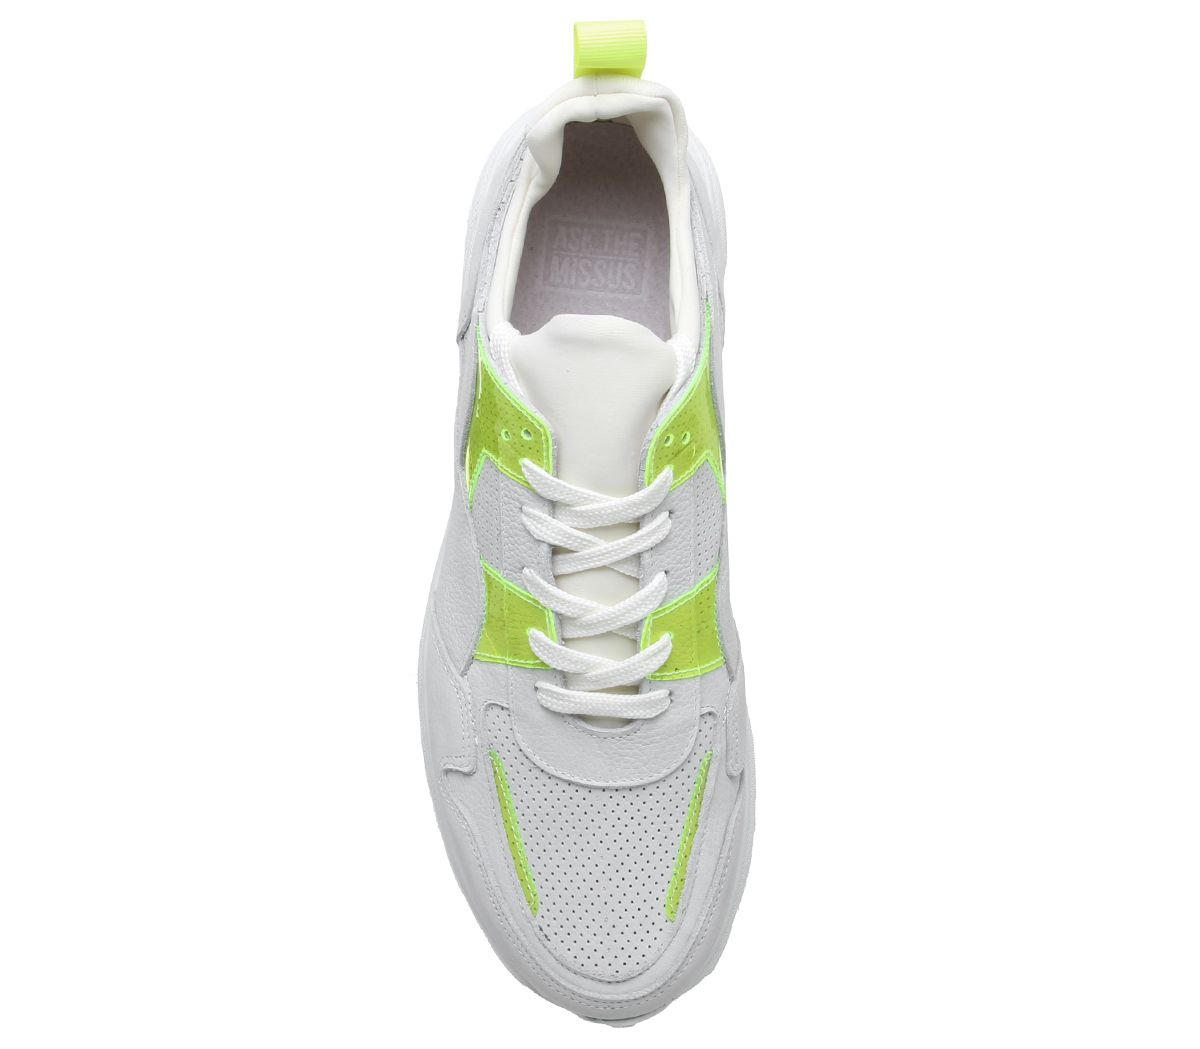 Mens-Office-Lacrosse-Trainers-White-Yellow-Nubuck-Casual-Shoes thumbnail 5